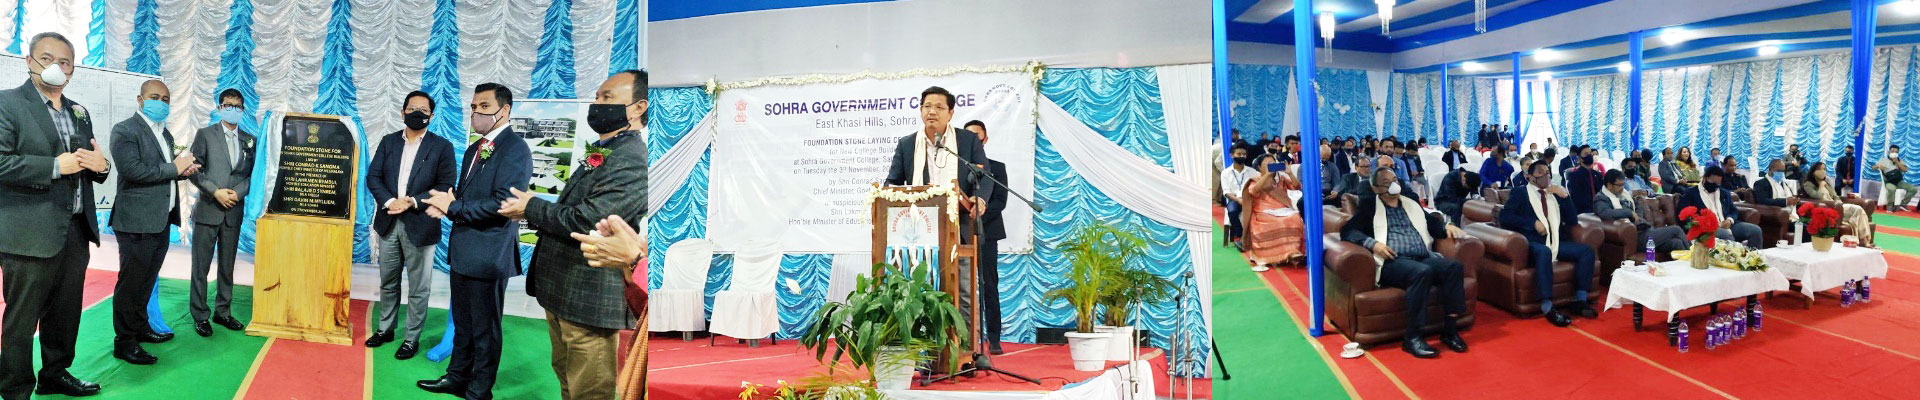 CM laid the foundation of the new college building of Sohra Government College